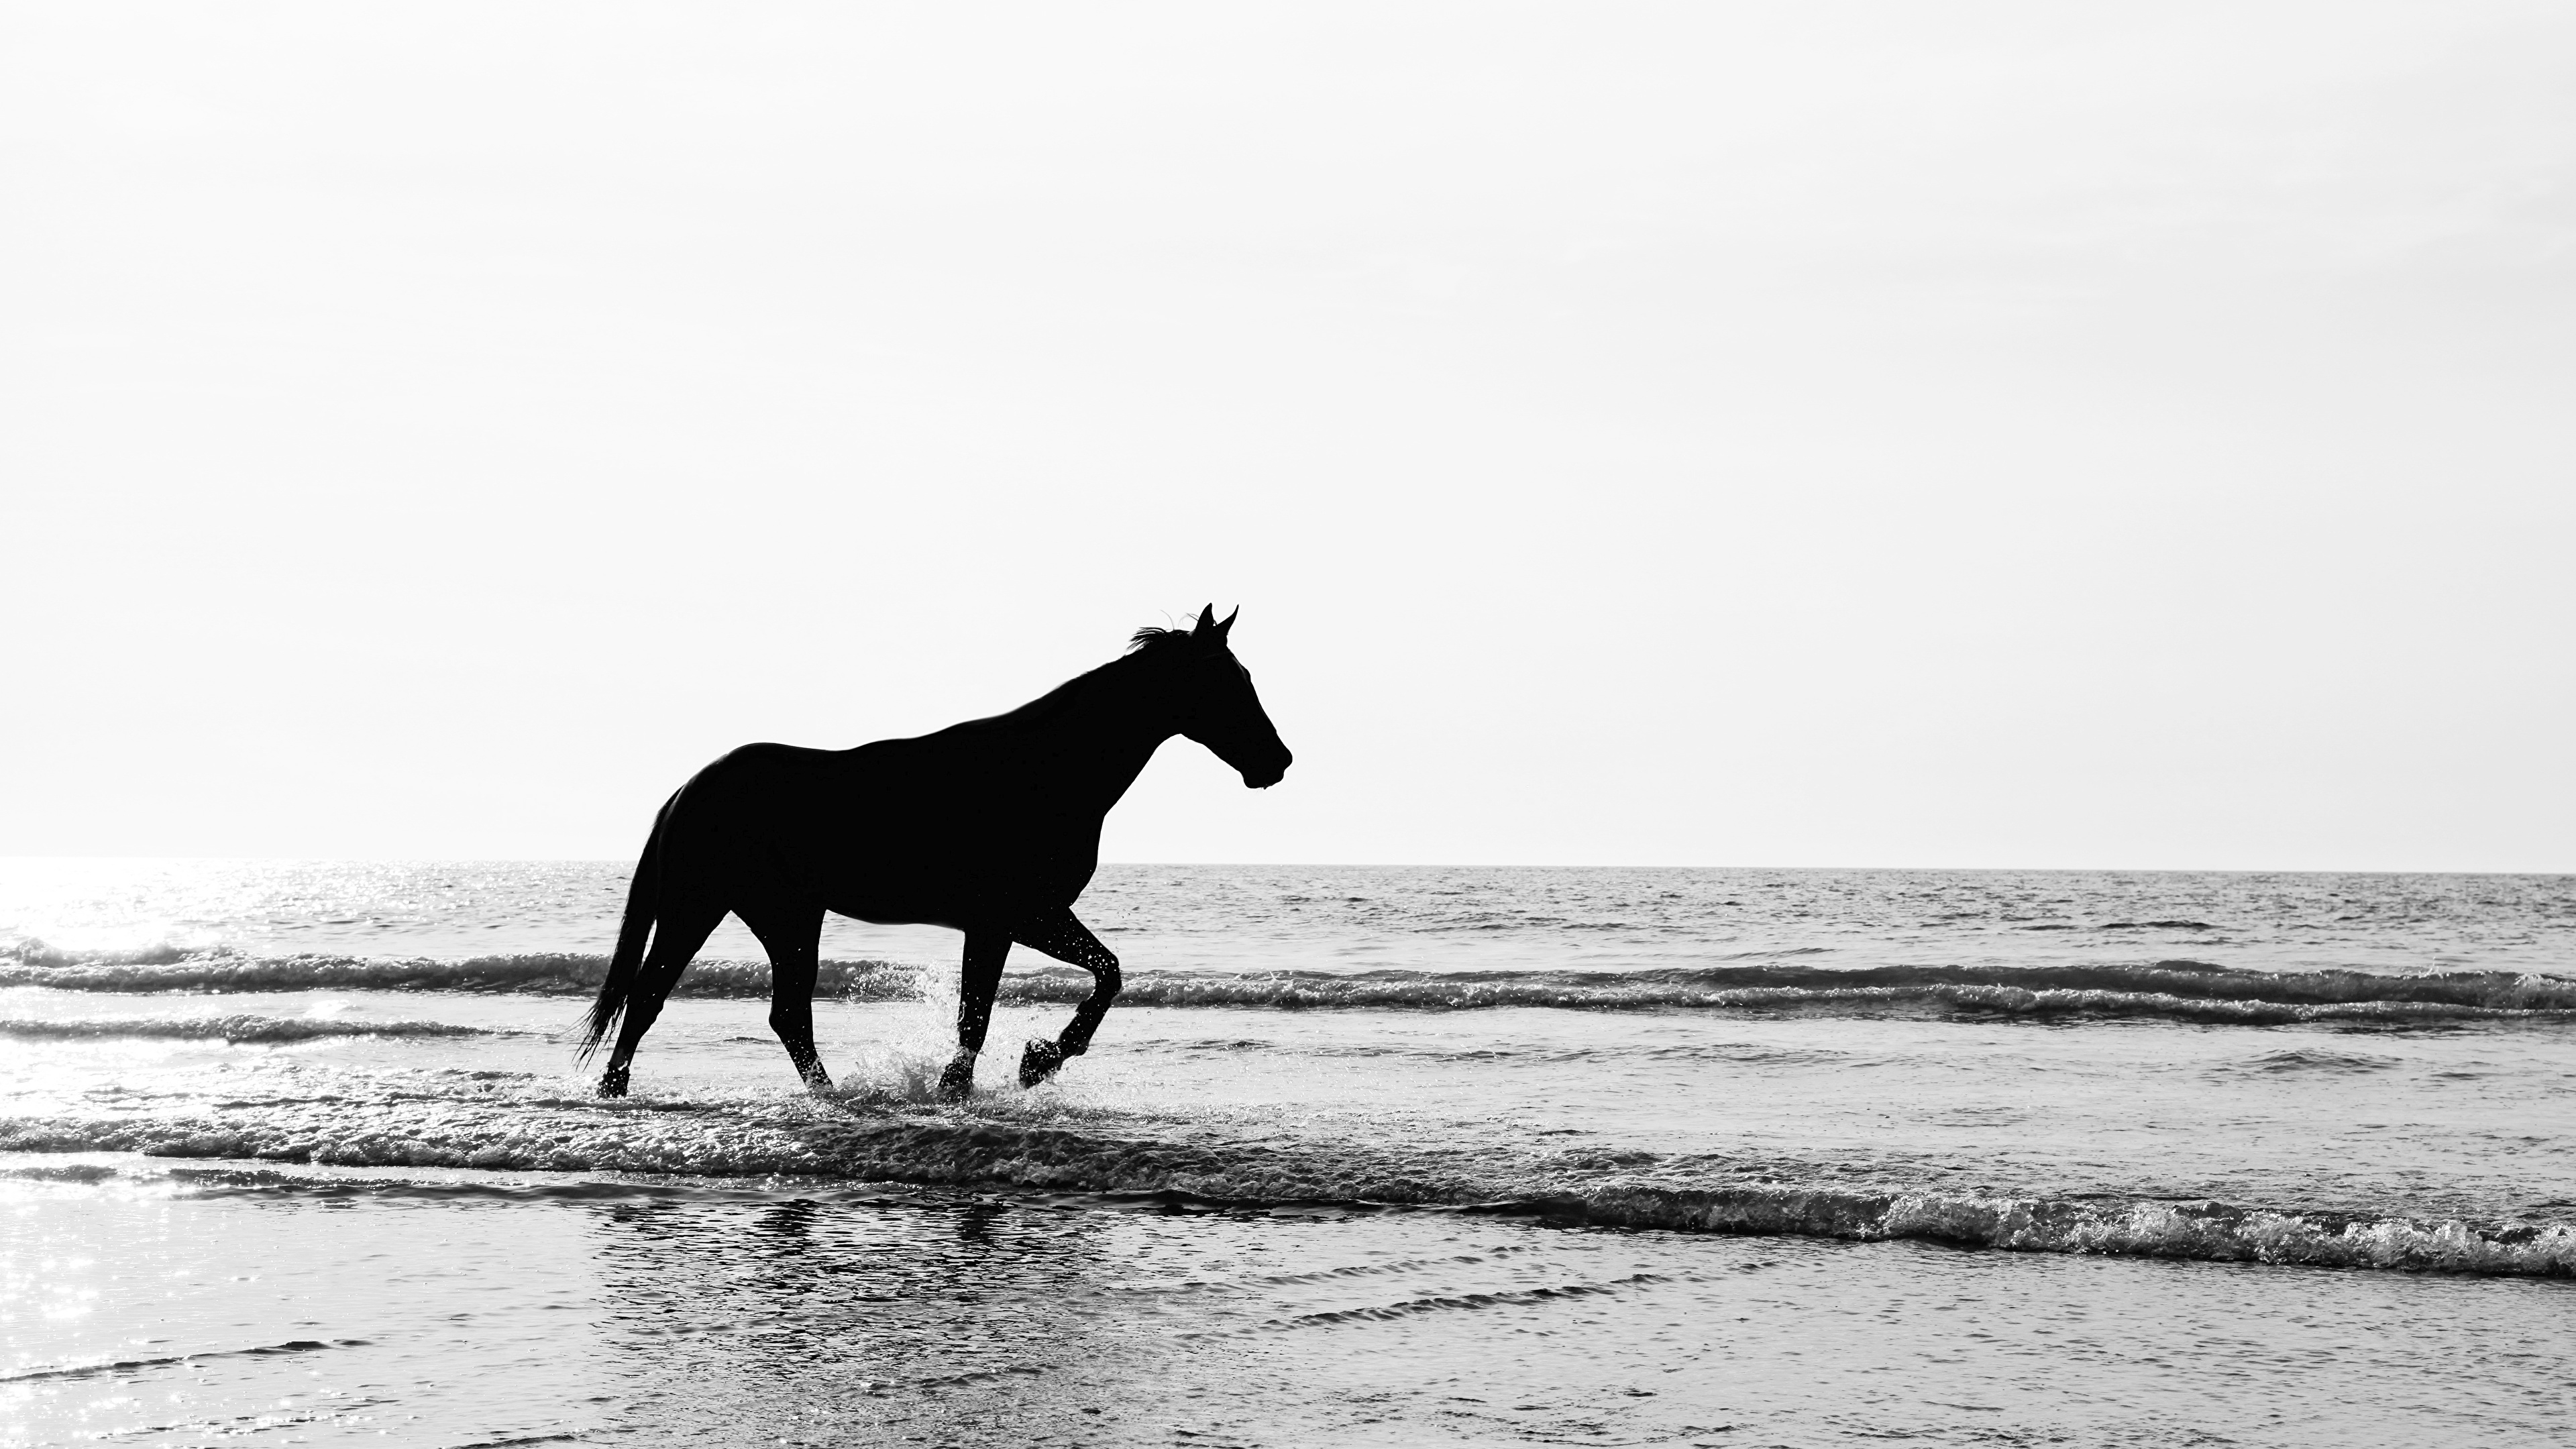 Images Horses Silhouettes Waves Animal 3840x2160